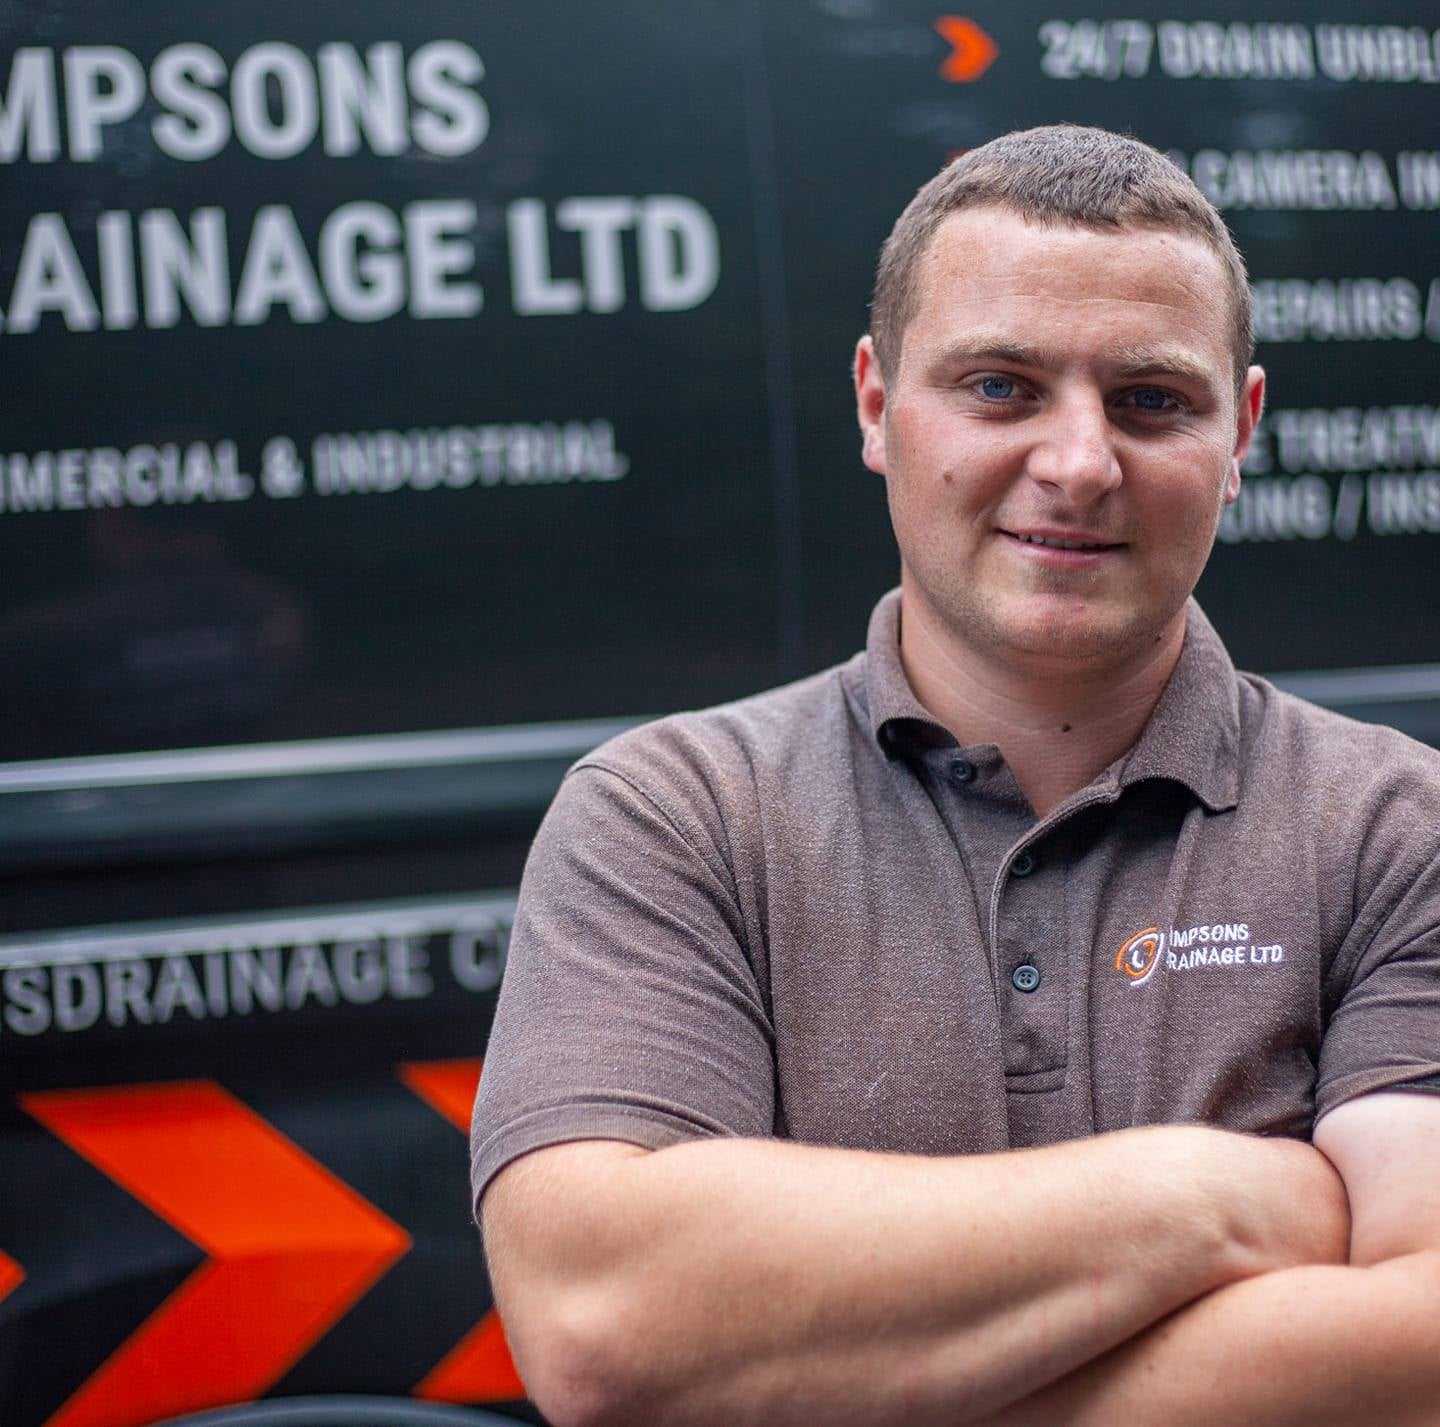 Person in front of company van. About page. Simpsons Drainage, Drain clearance, drain unblocking, septic tank services, septic tank emptying, drain camera surveys, drain repairs, drain lining, new drains in Warminster, Frome, Trowbridge.